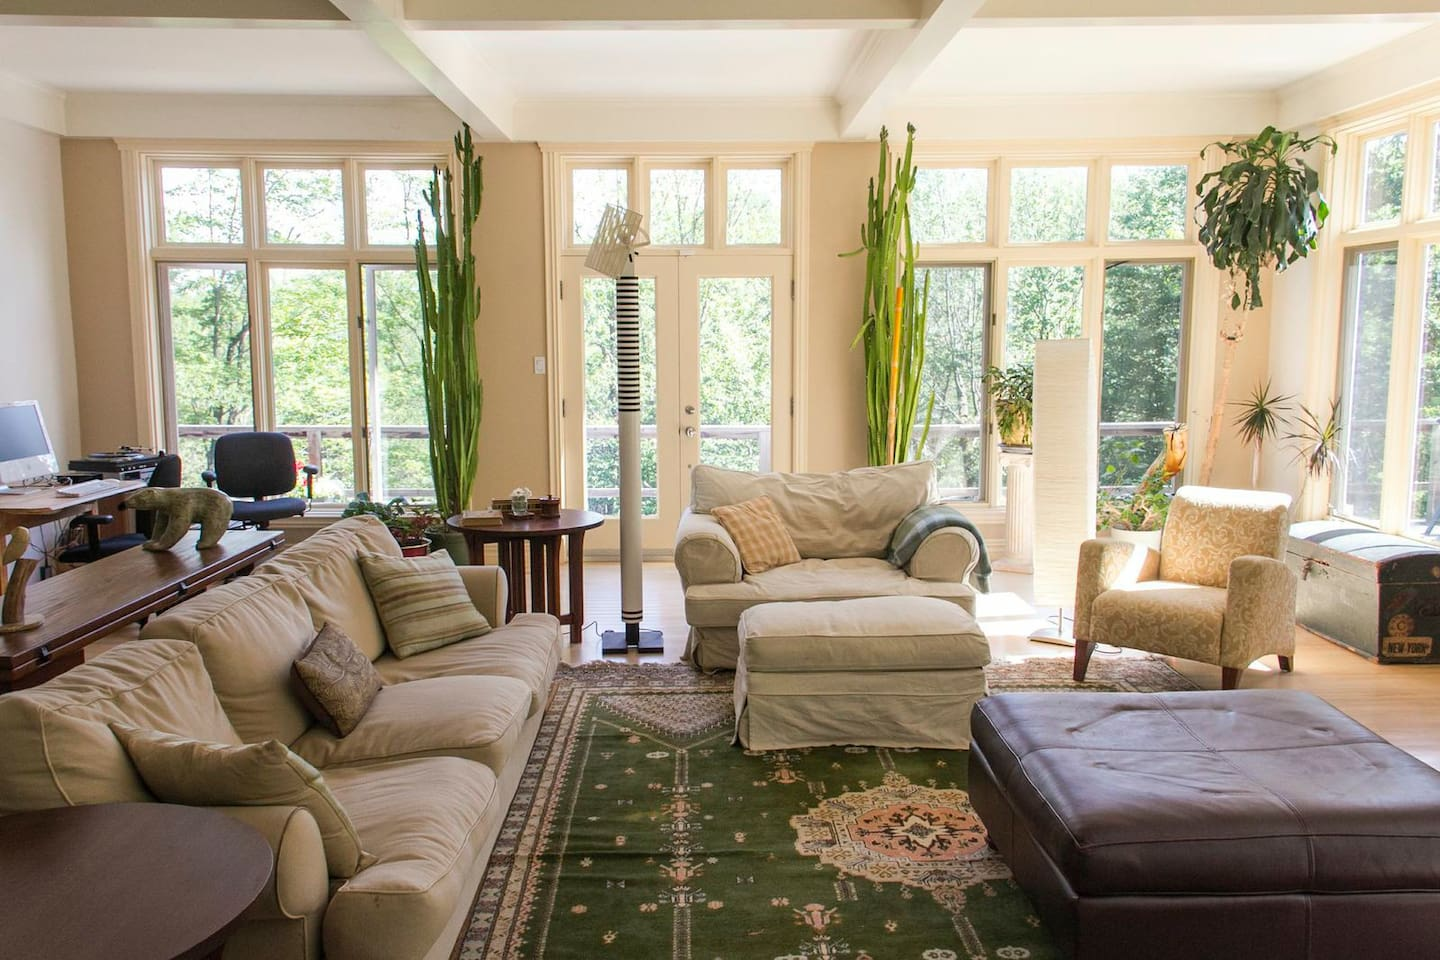 Expansive shabby chic living room.